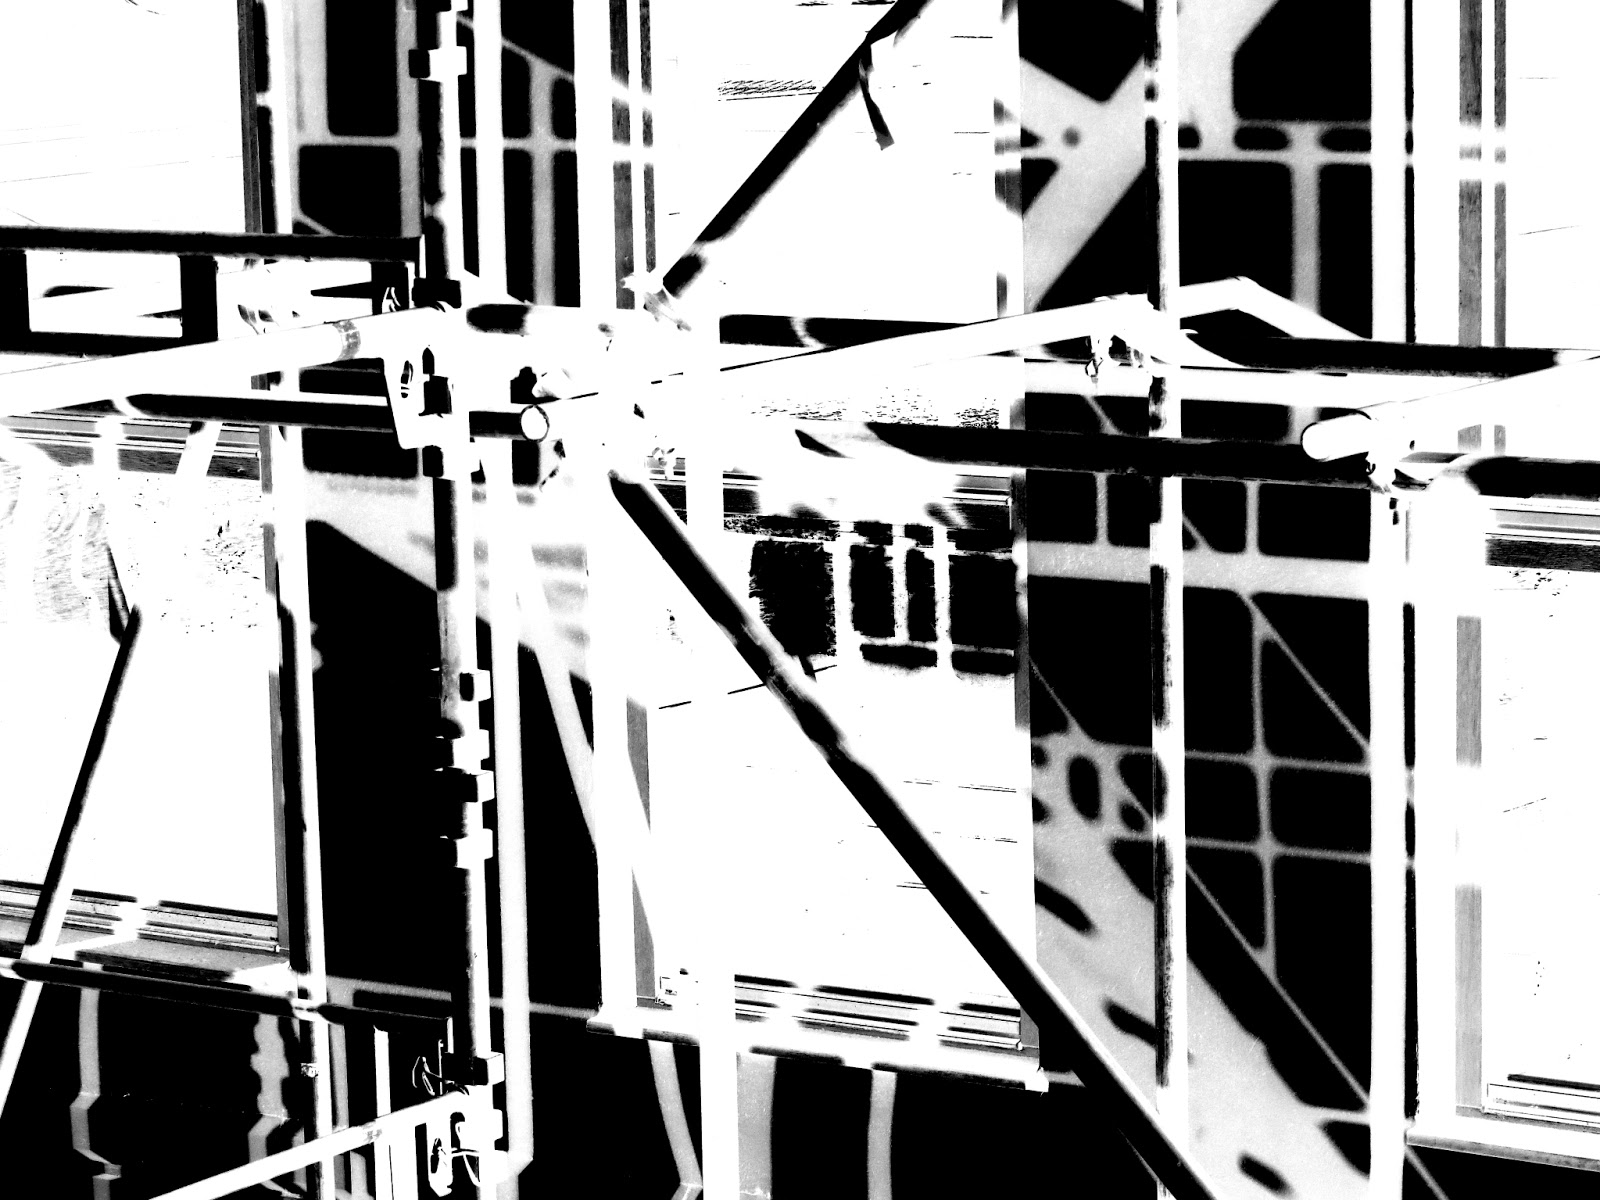 Scaffolding on building in black and white with colours inverted.